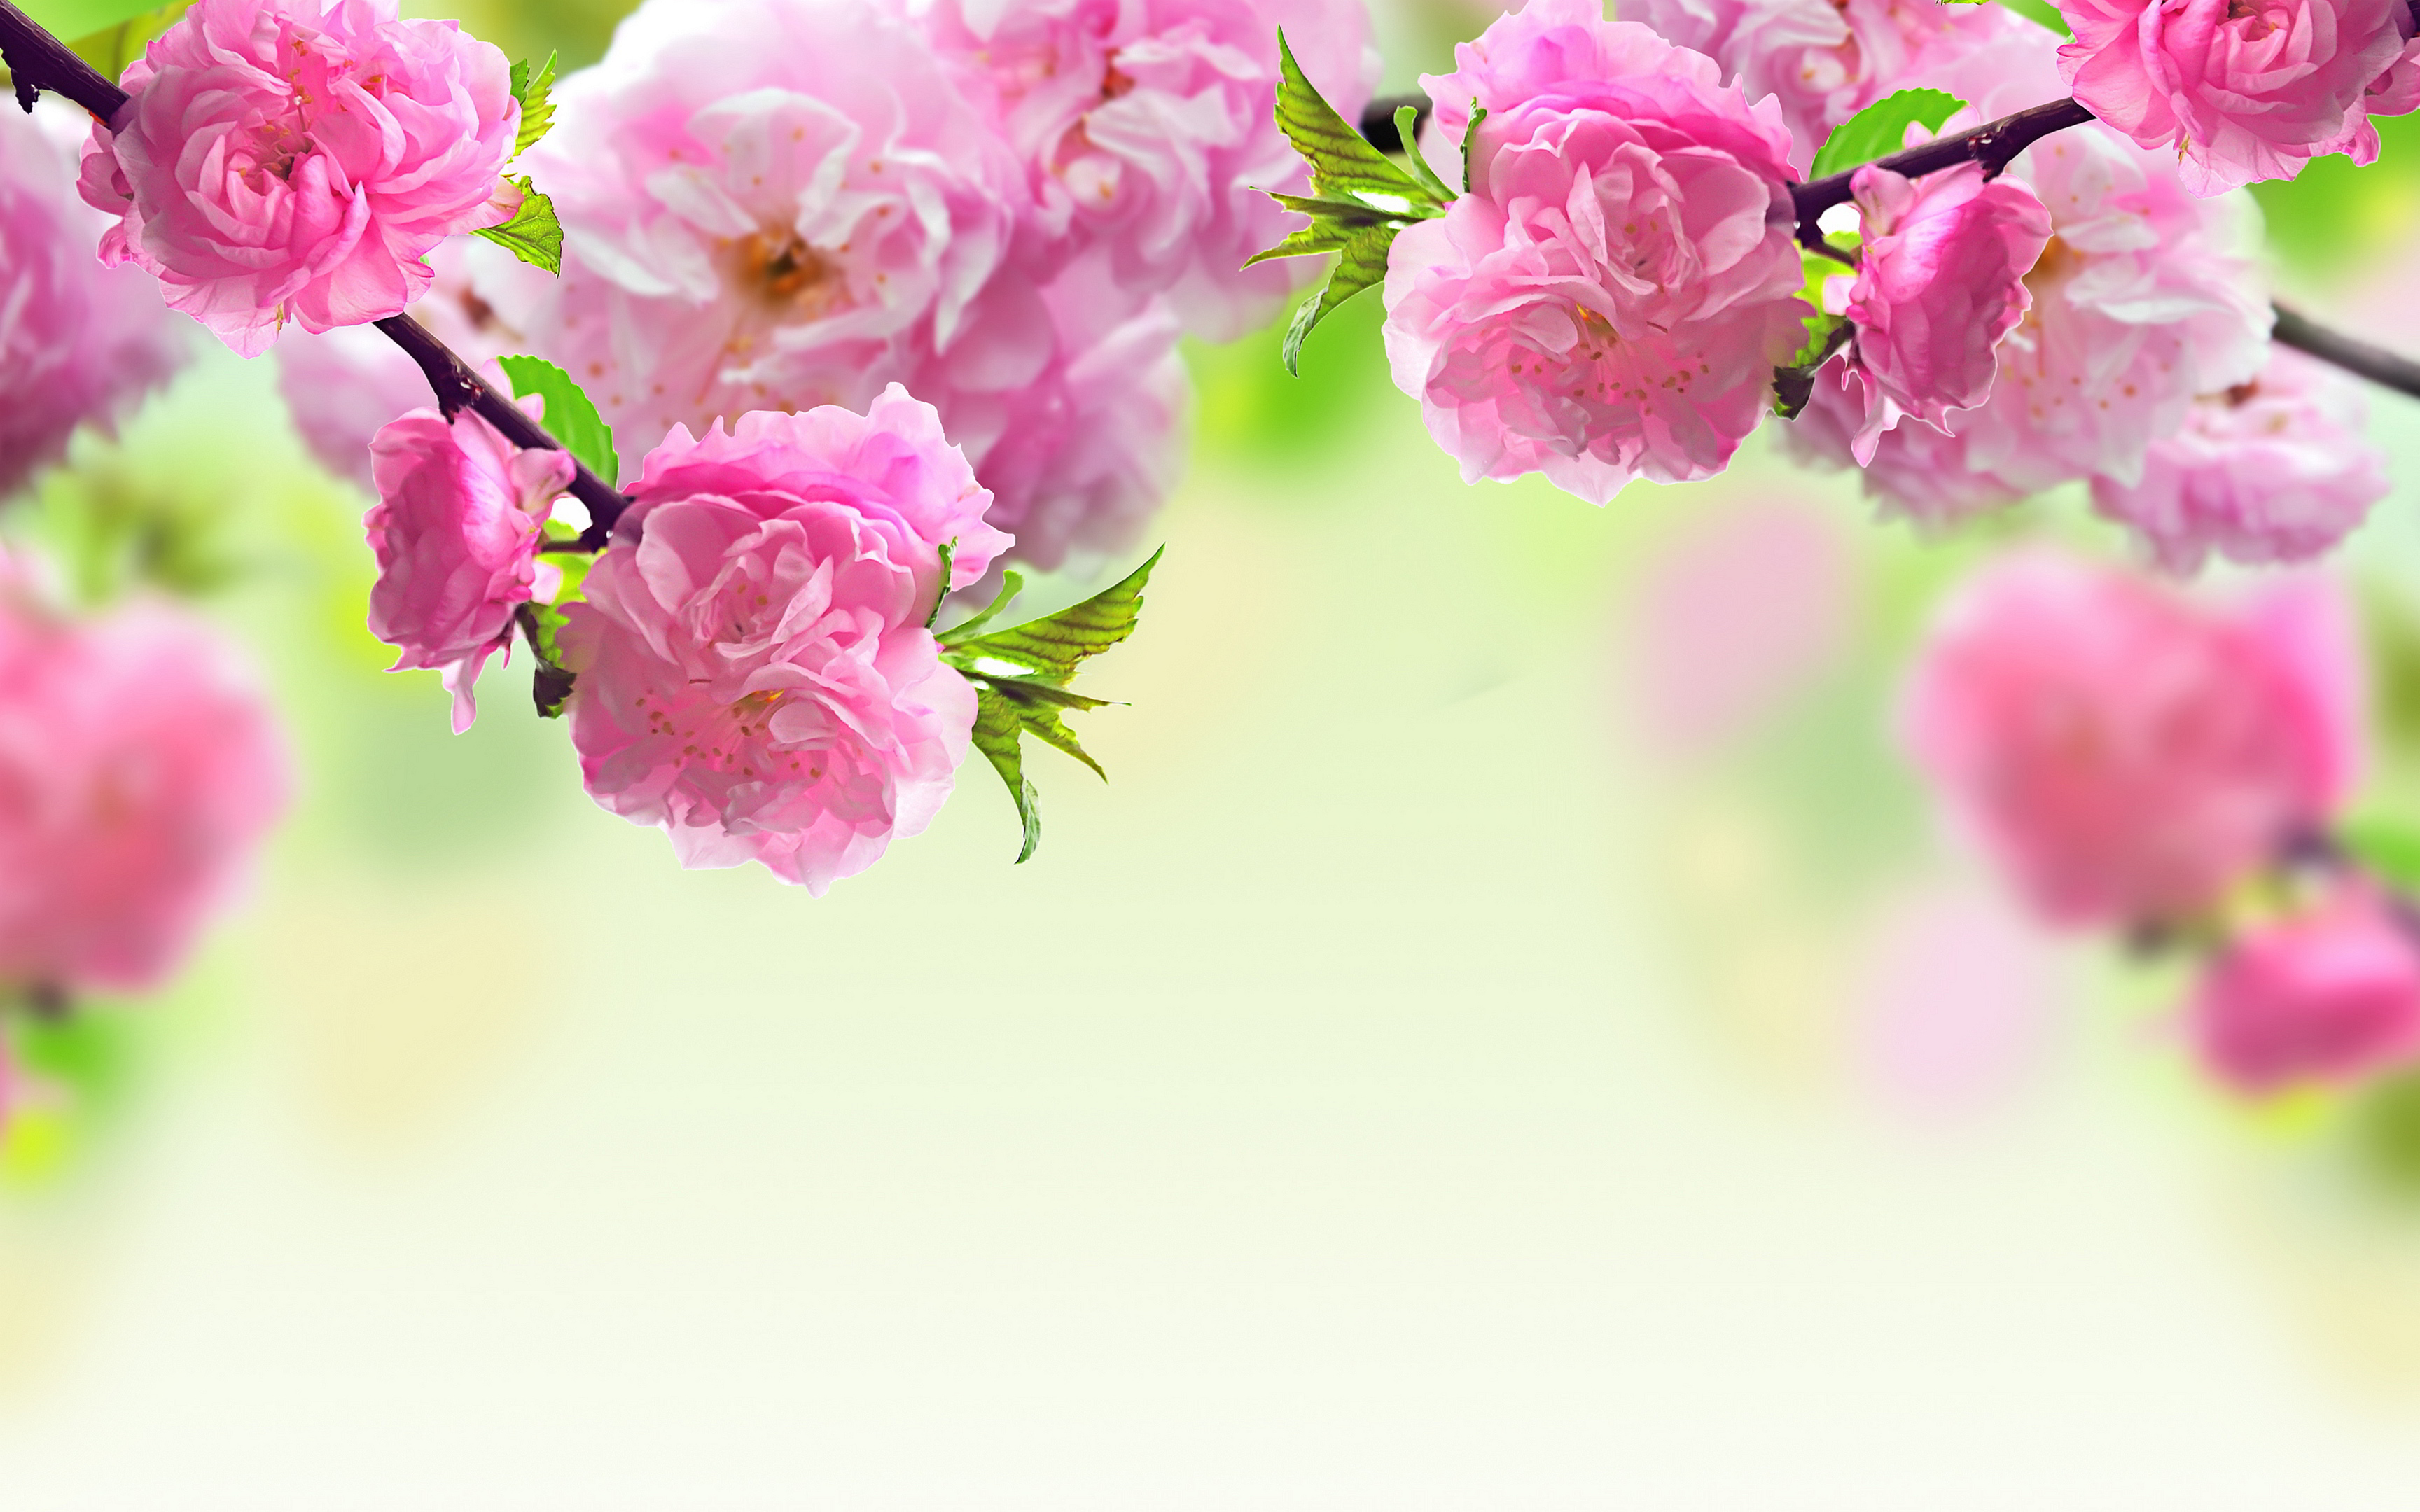 Spring flowers background Wallpapers Pictures Photos Images #3820